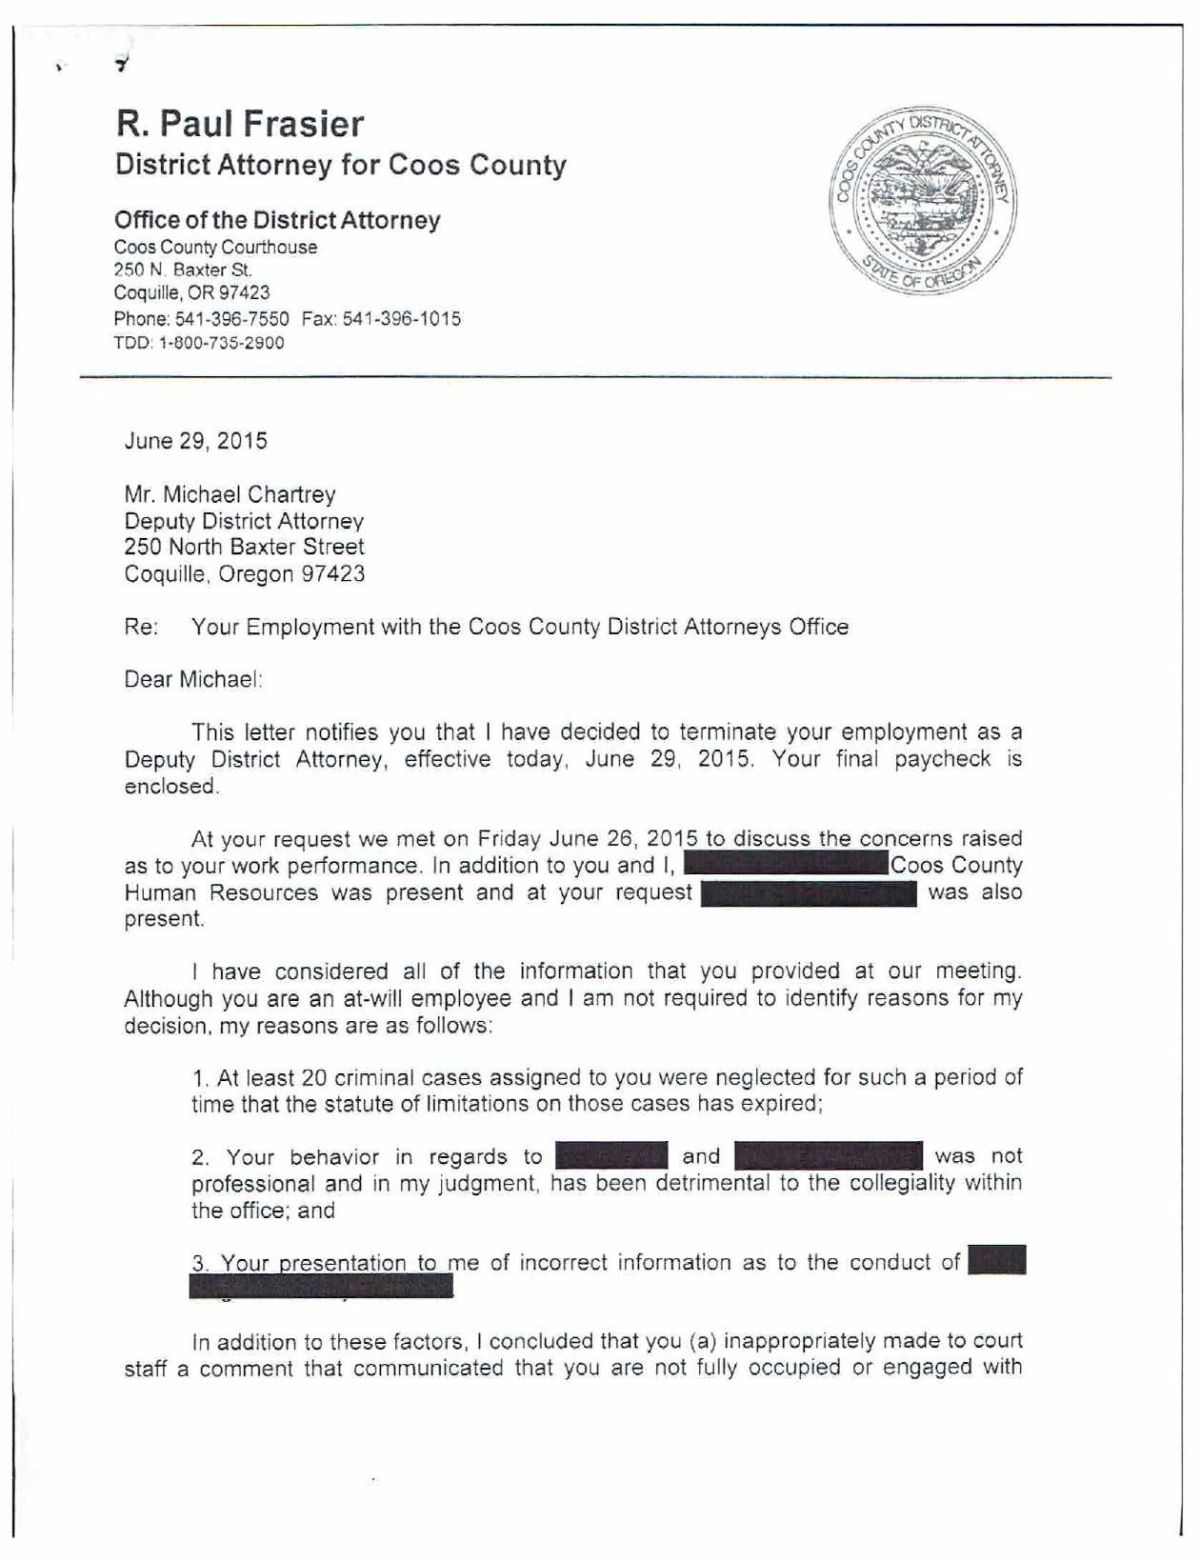 Download Pdf Michael Chartrey Termination Letter Pg. 1